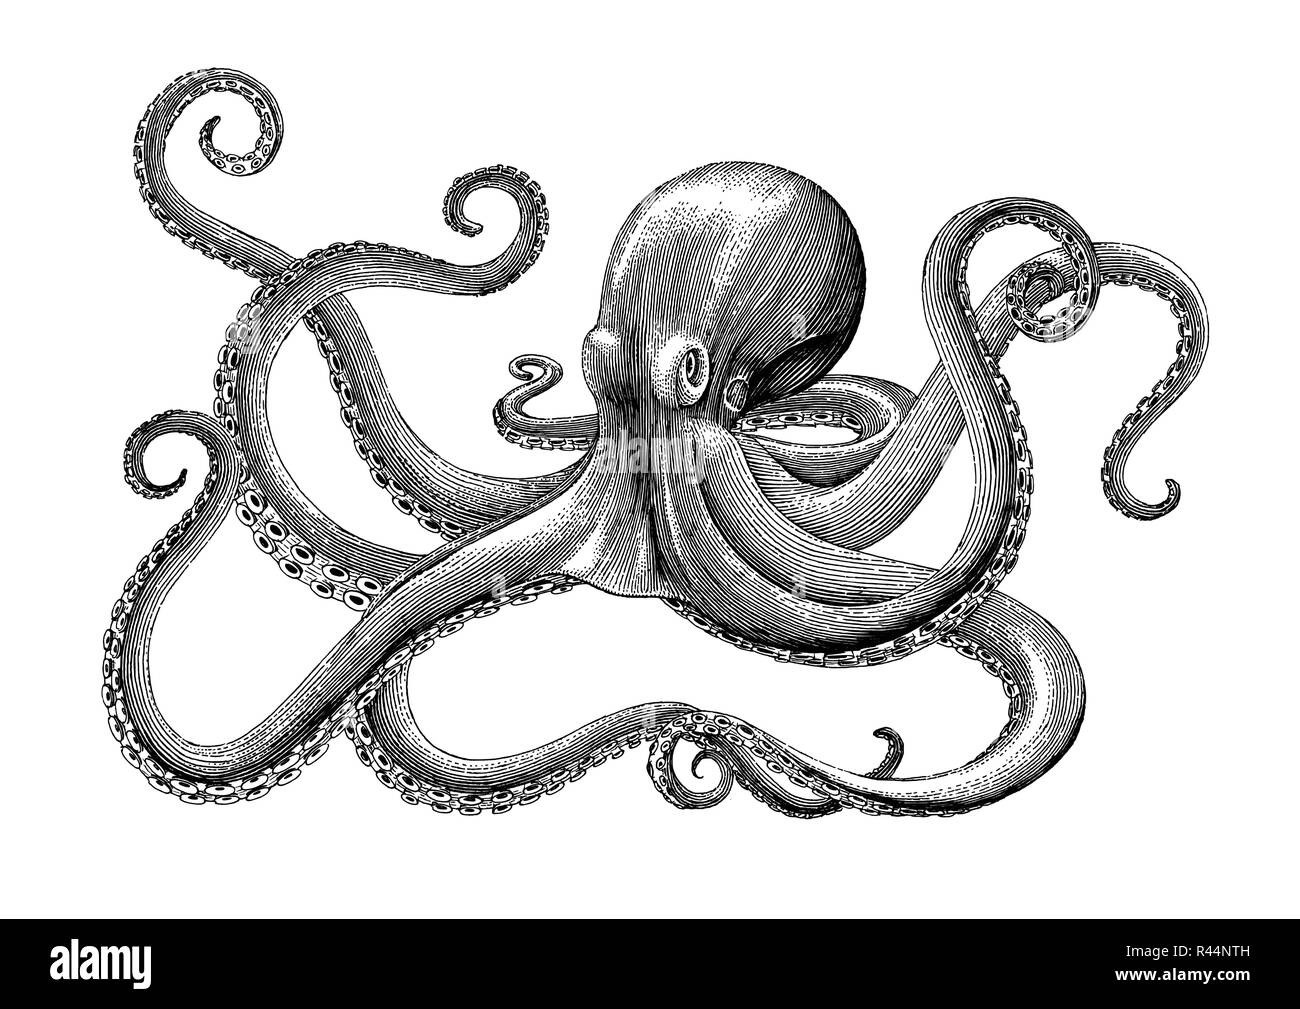 Octopus hand drawing vintage engraving illustration on white backgroud - Stock Vector